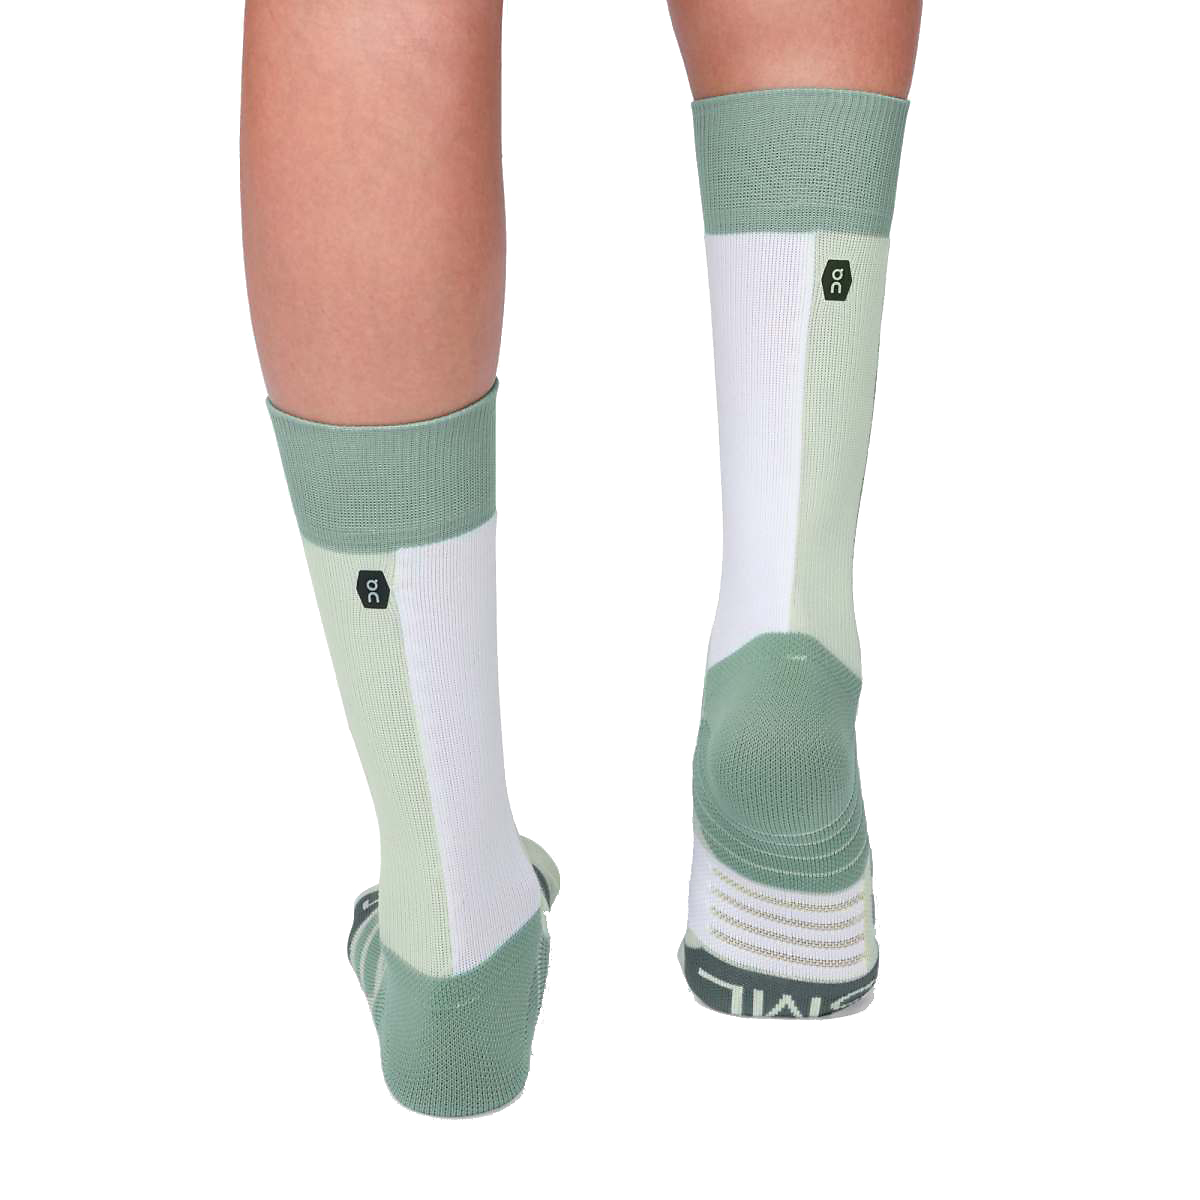 Women's On High Sock - Color: Mineral/White - Size: XS, Mineral/White, large, image 4